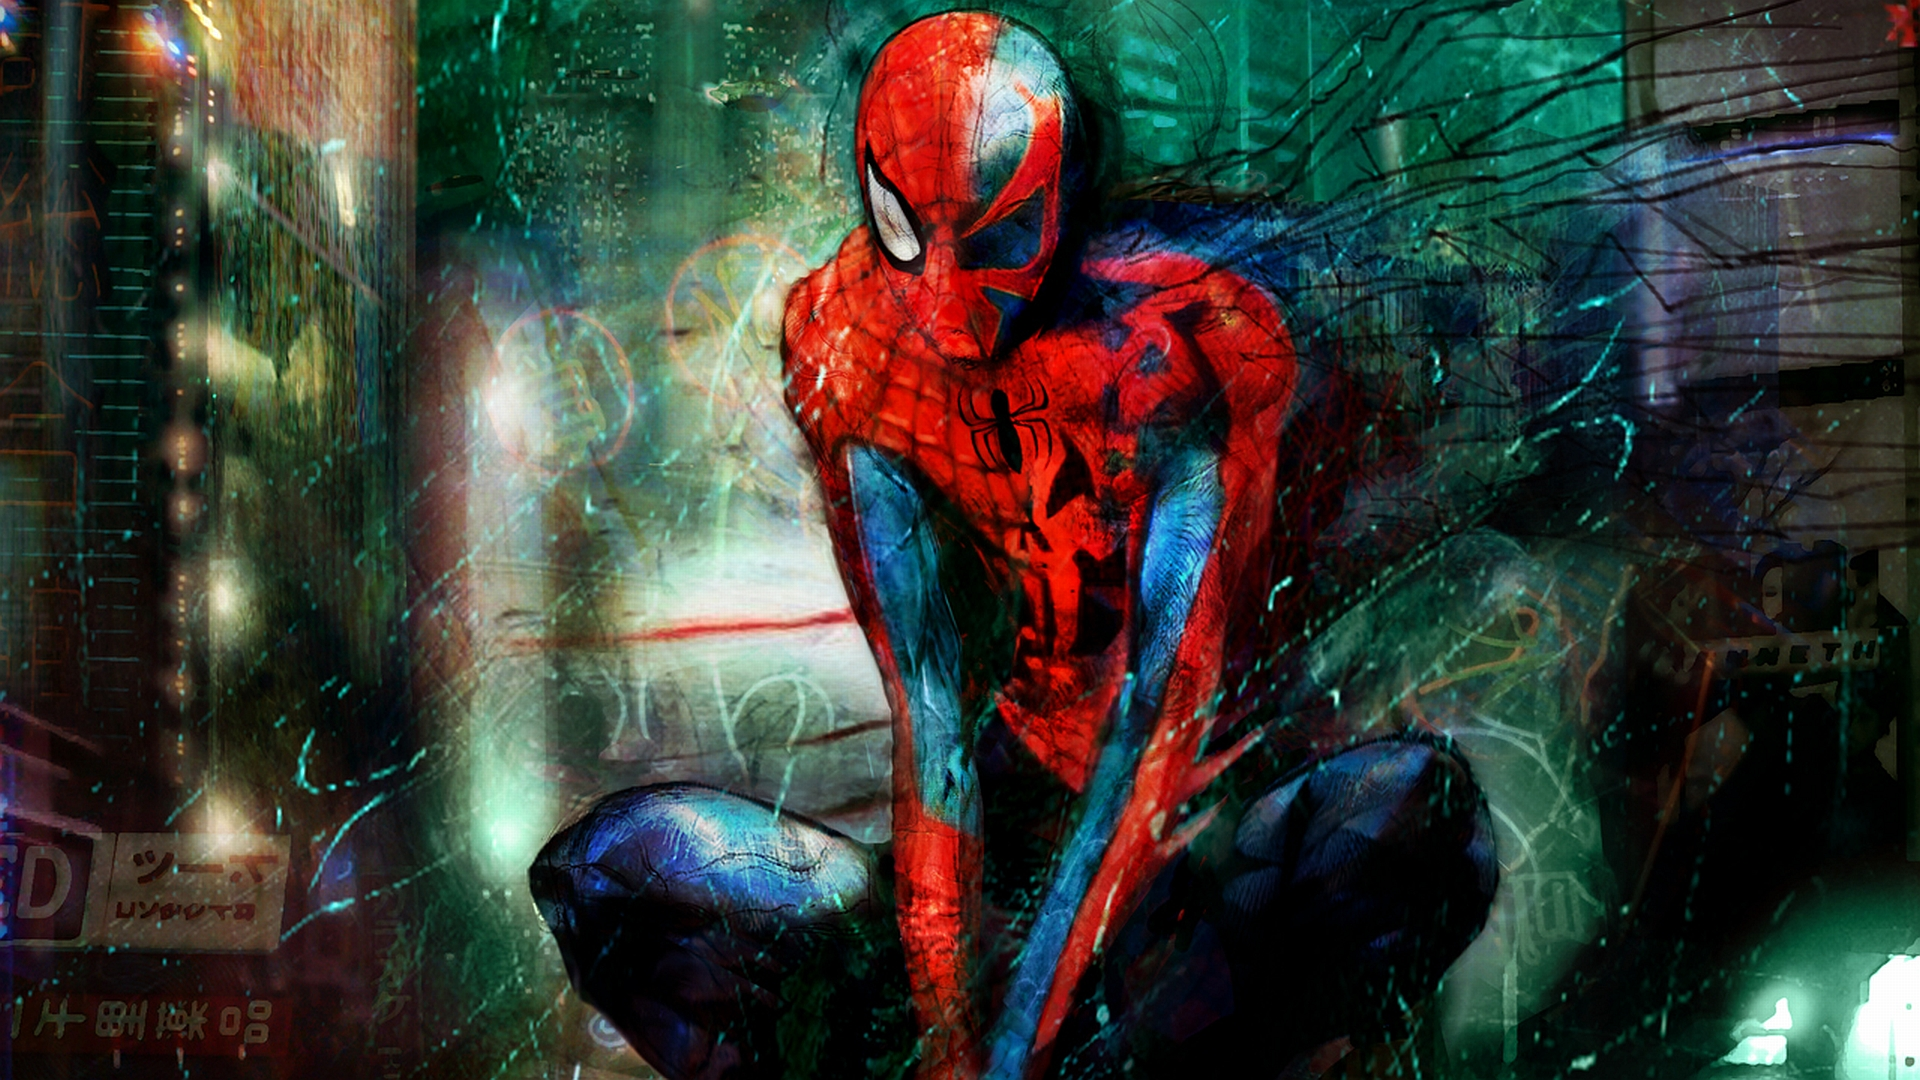 Comics - Spider-Man Wallpaper